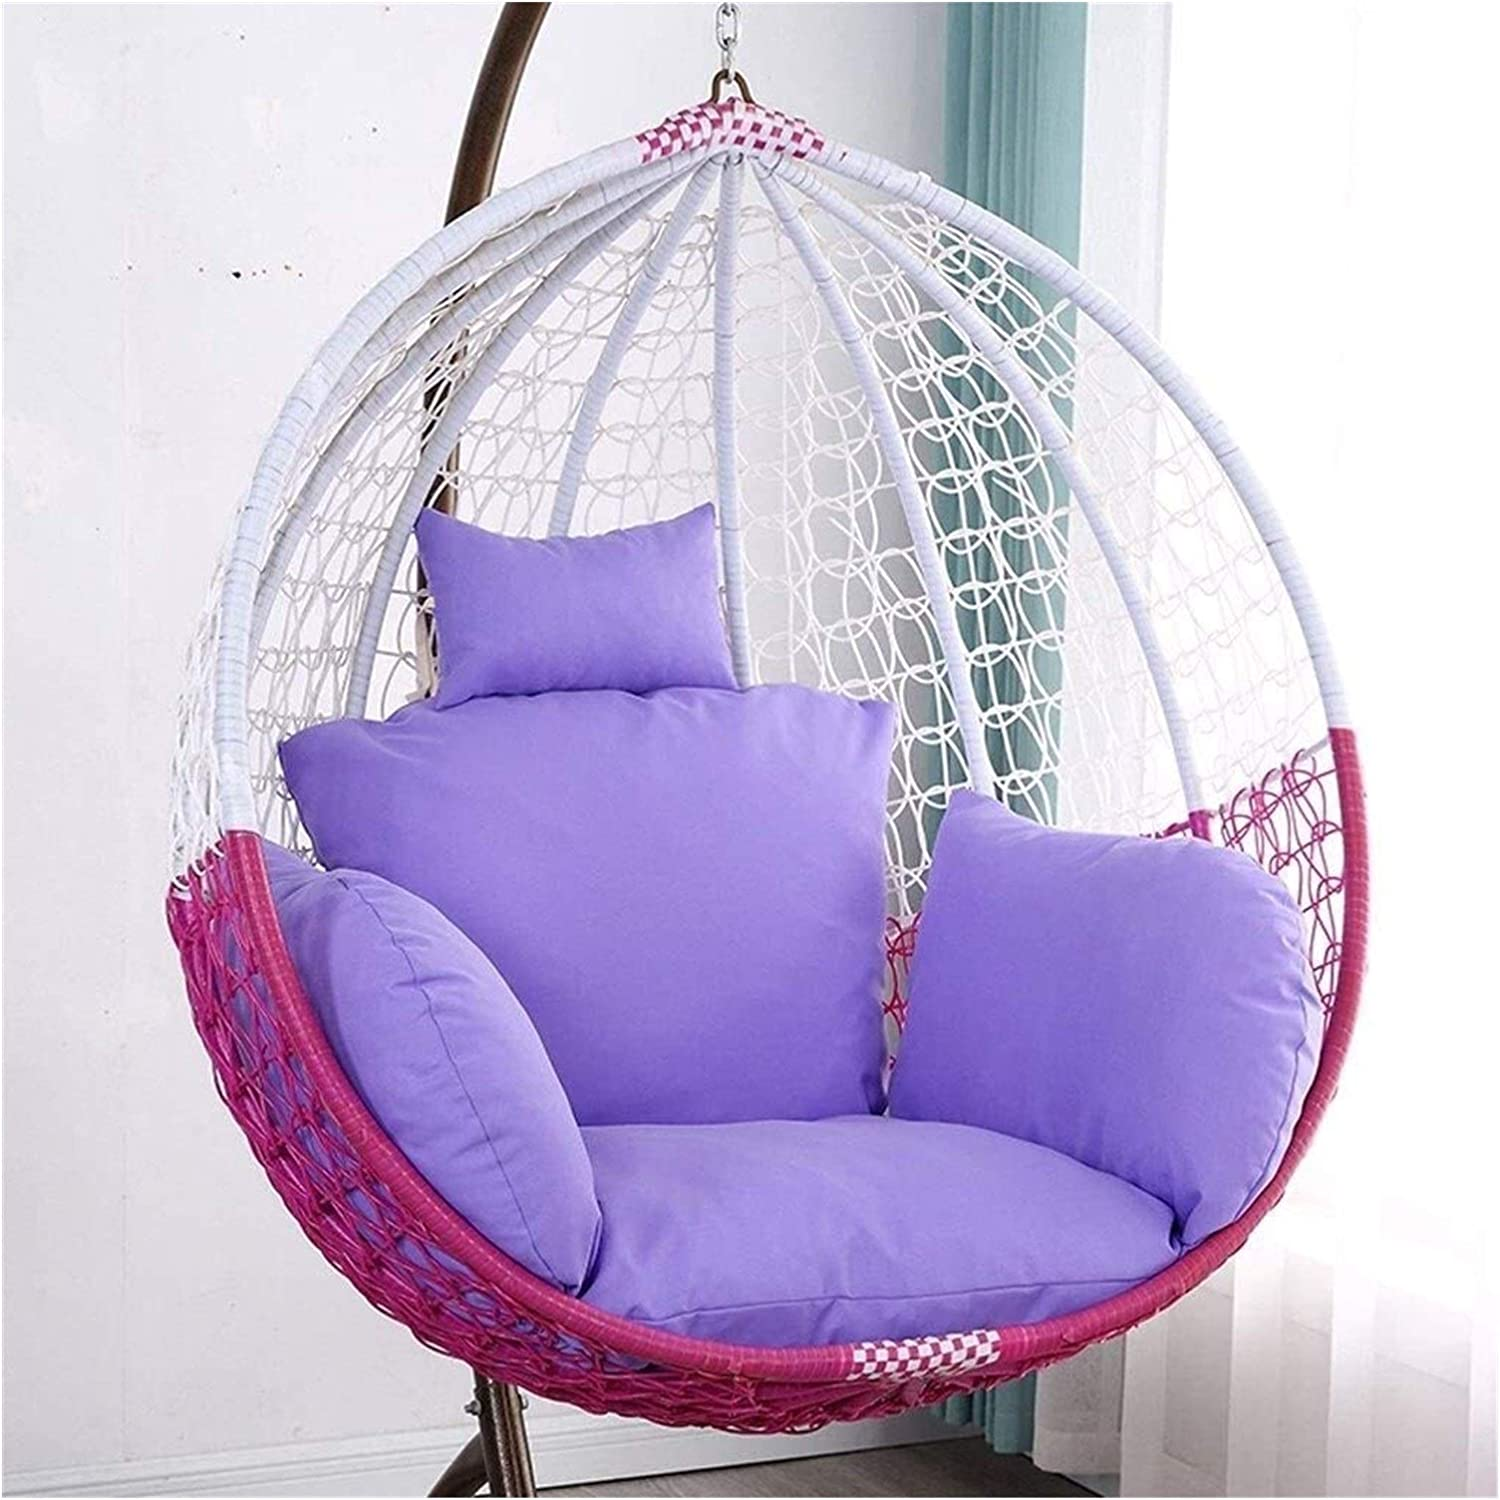 ZHANGYN Hanging Basket Egg Chair Cu Super Inventory cleanup selling sale sale period limited Cushions Swing